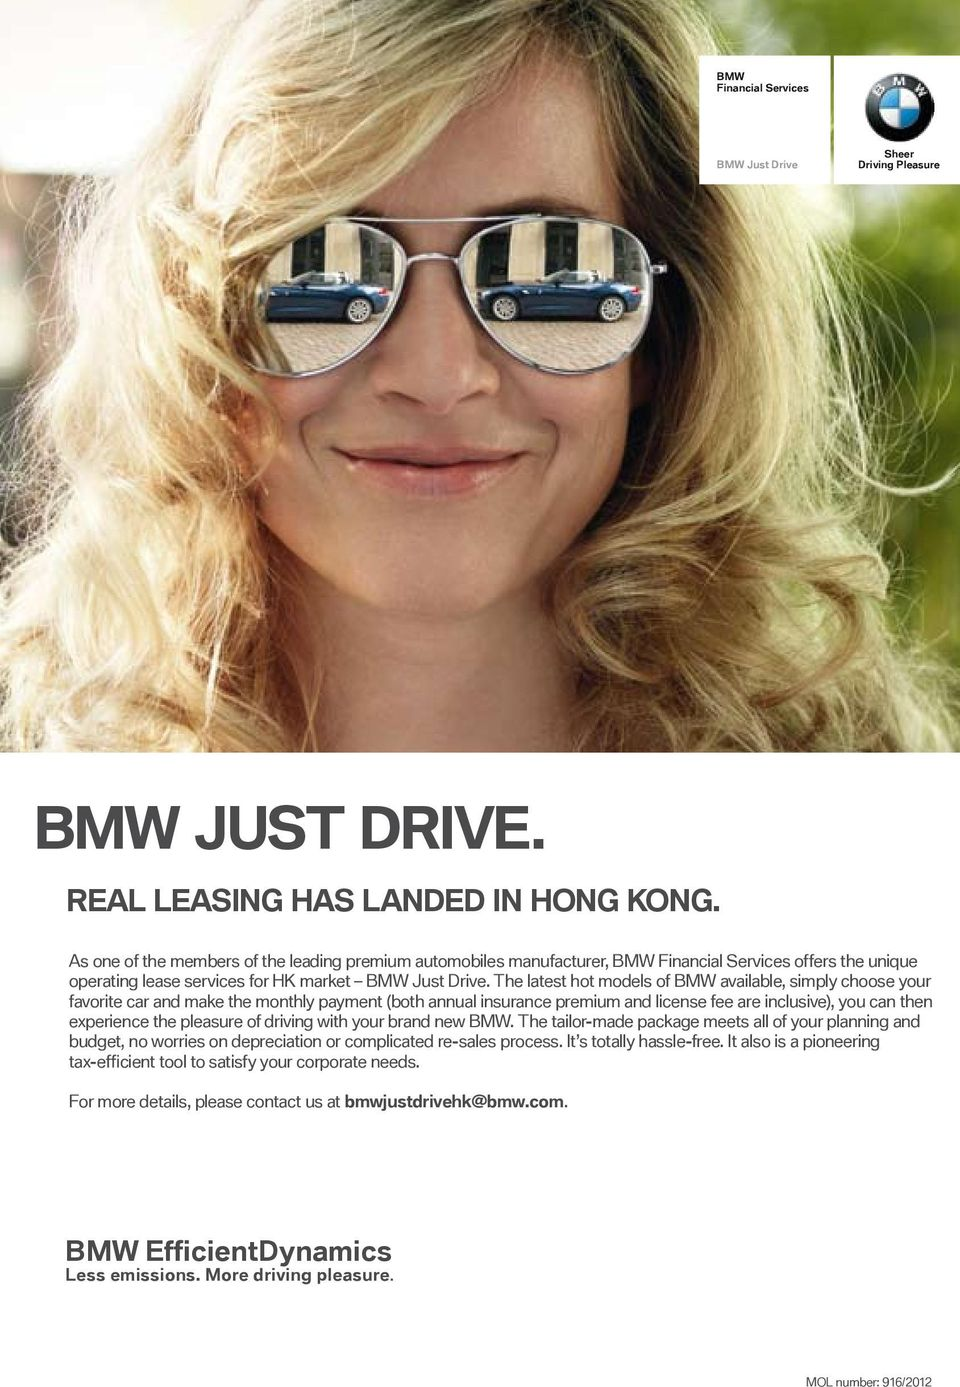 The latest hot models of BMW available, simply choose your favorite car and make the monthly payment (both annual insurance premium and license fee are inclusive), you can then experience